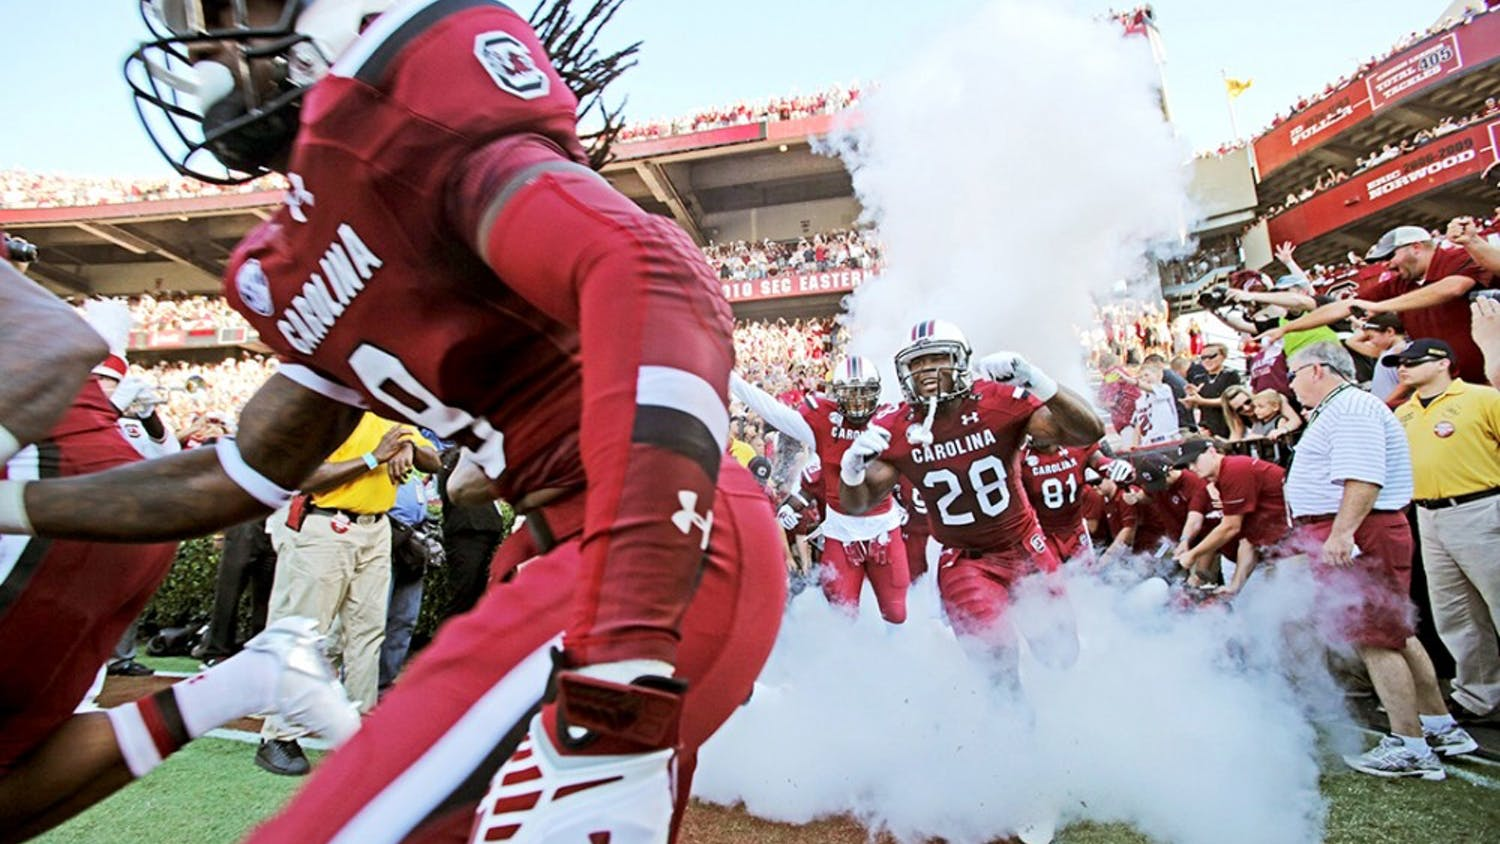 South Carolina running back Mike Davis (28) and the rest of the Gamecocks head onto the field prior to the start of action against Texas A&M at Williams-Brice Stadium in Columbia, S.C., on Thursday, Aug. 28, 2014. (Gerry Melendez/The State/MCT)